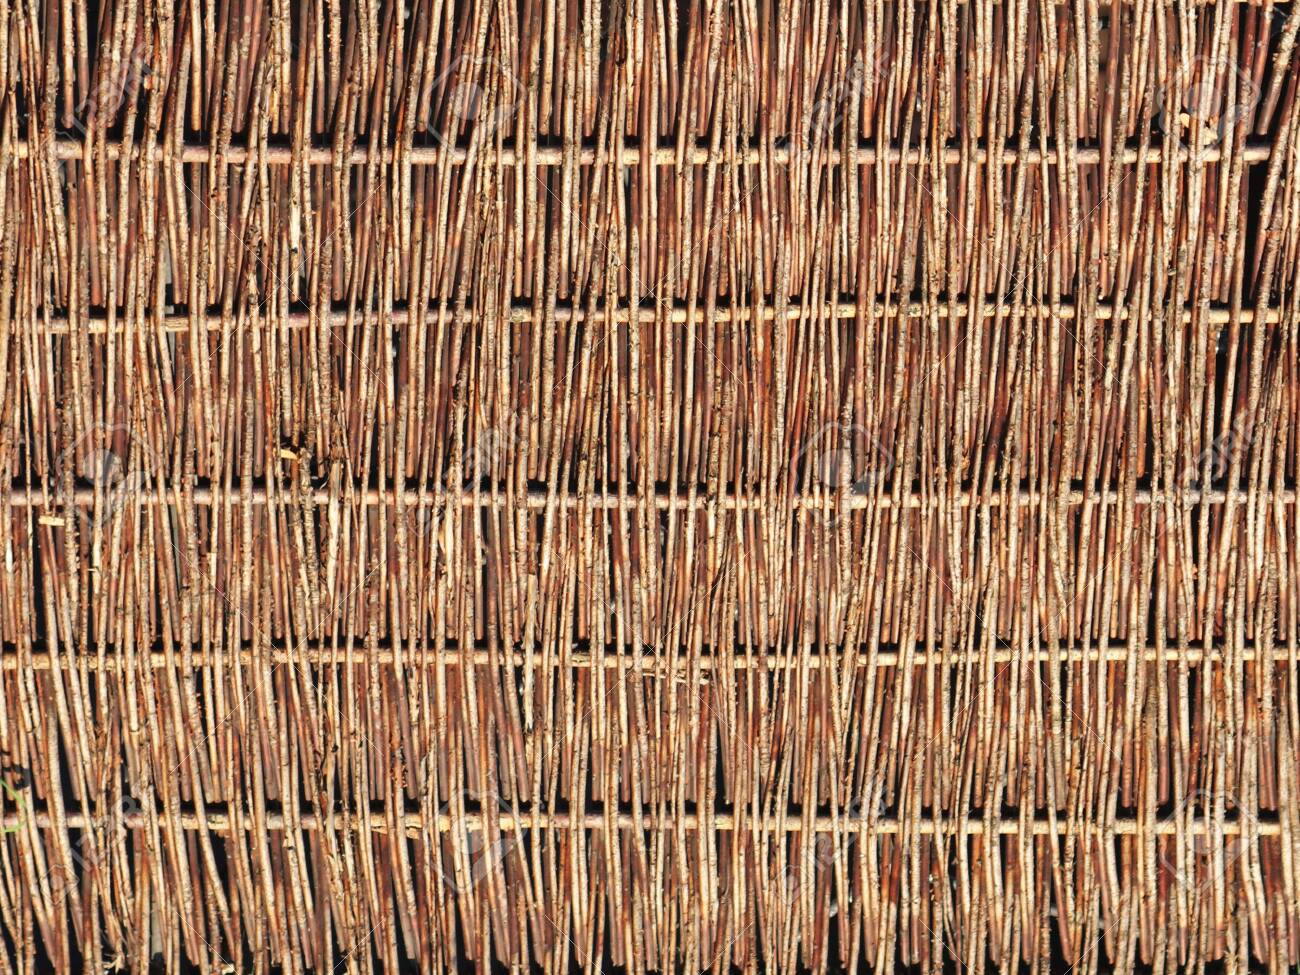 Weaving From Willow Branches Background For The Design Of Natural Stock Photo Picture And Royalty Free Image Image 138888516